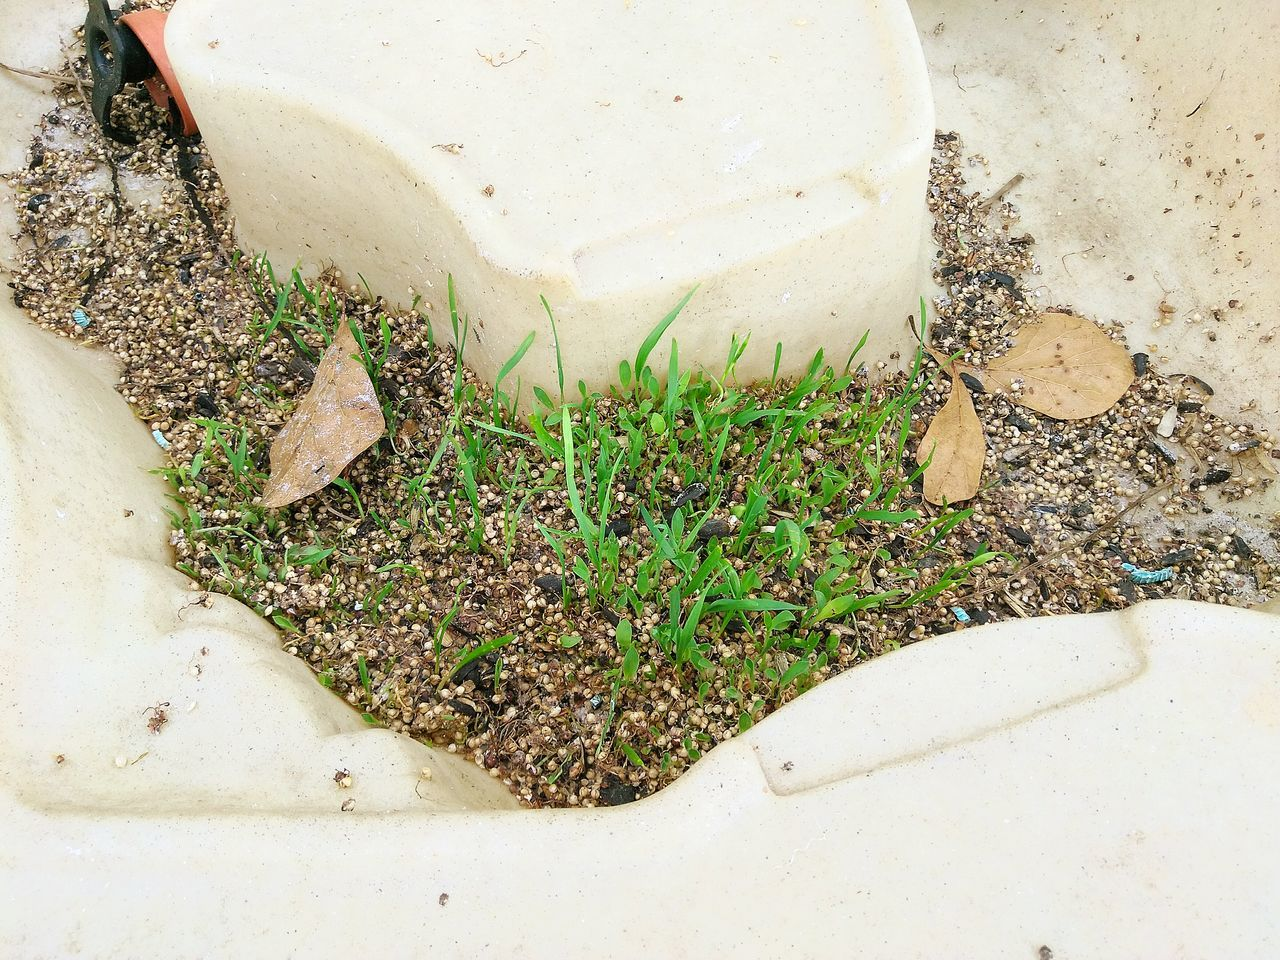 The Unexpected Birdseed Sprouting Up Sandbox Planting Seeds Who Knew